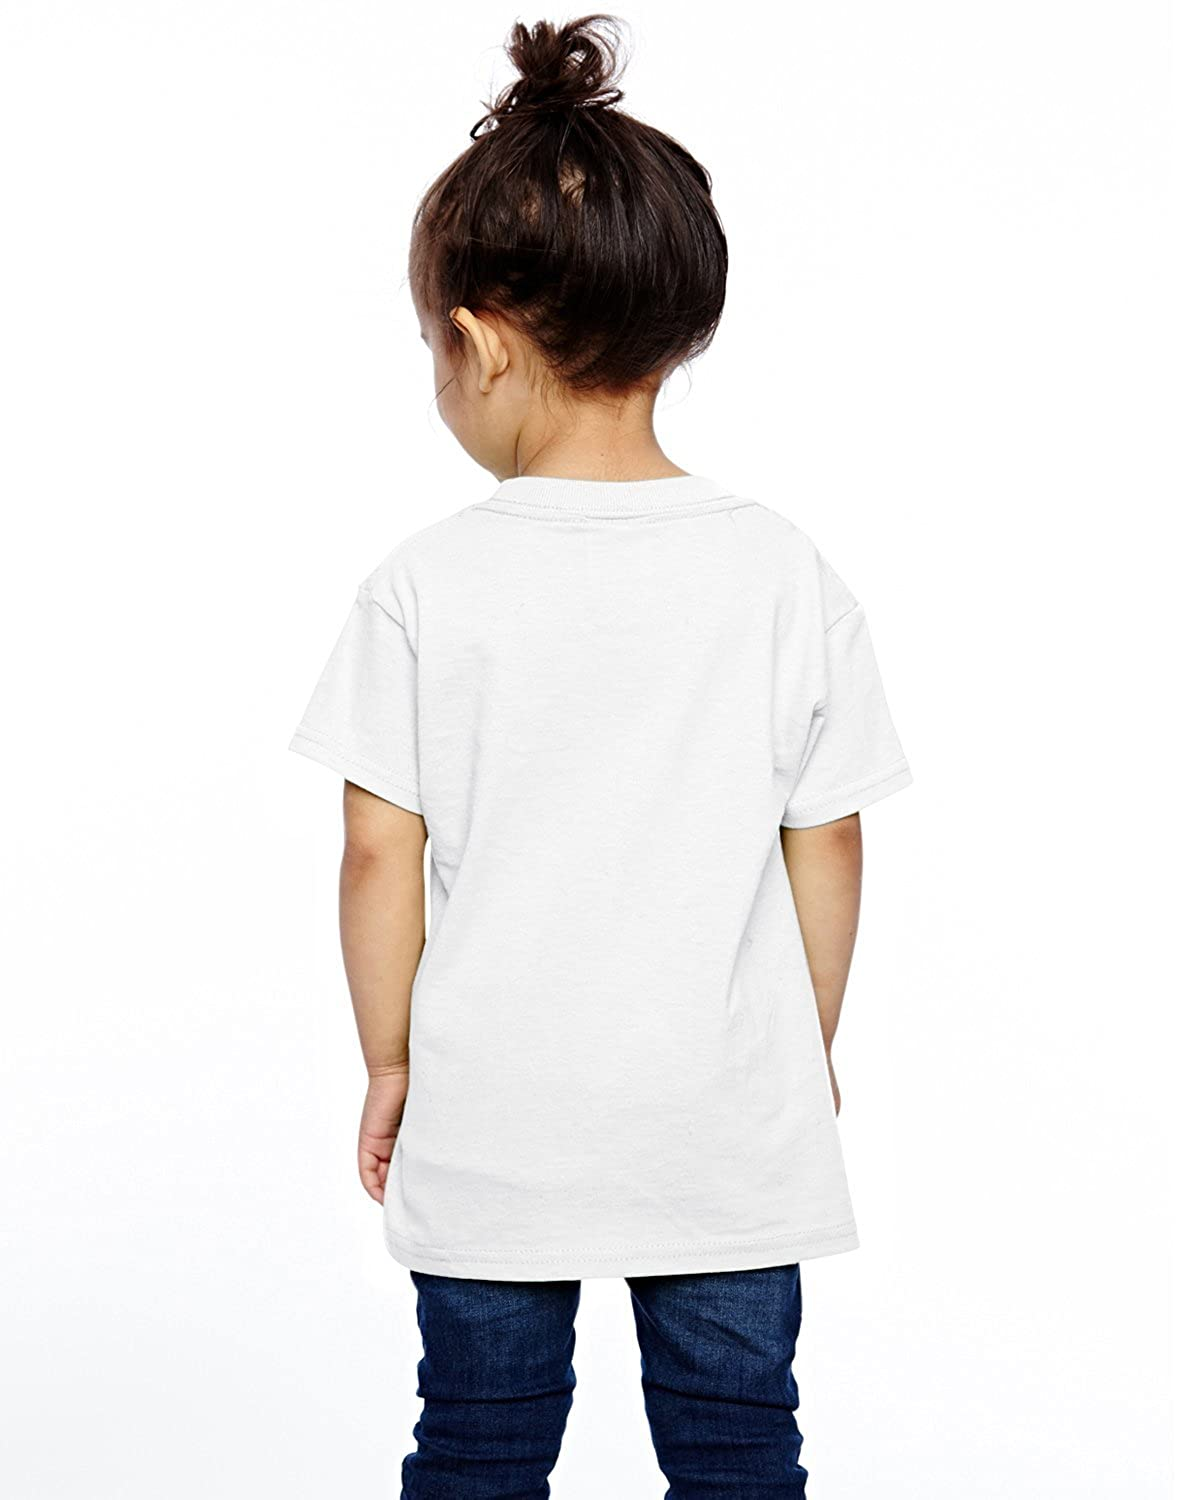 Fuck Love Something 2-6 Years Old Child Short-Sleeved Tshirts